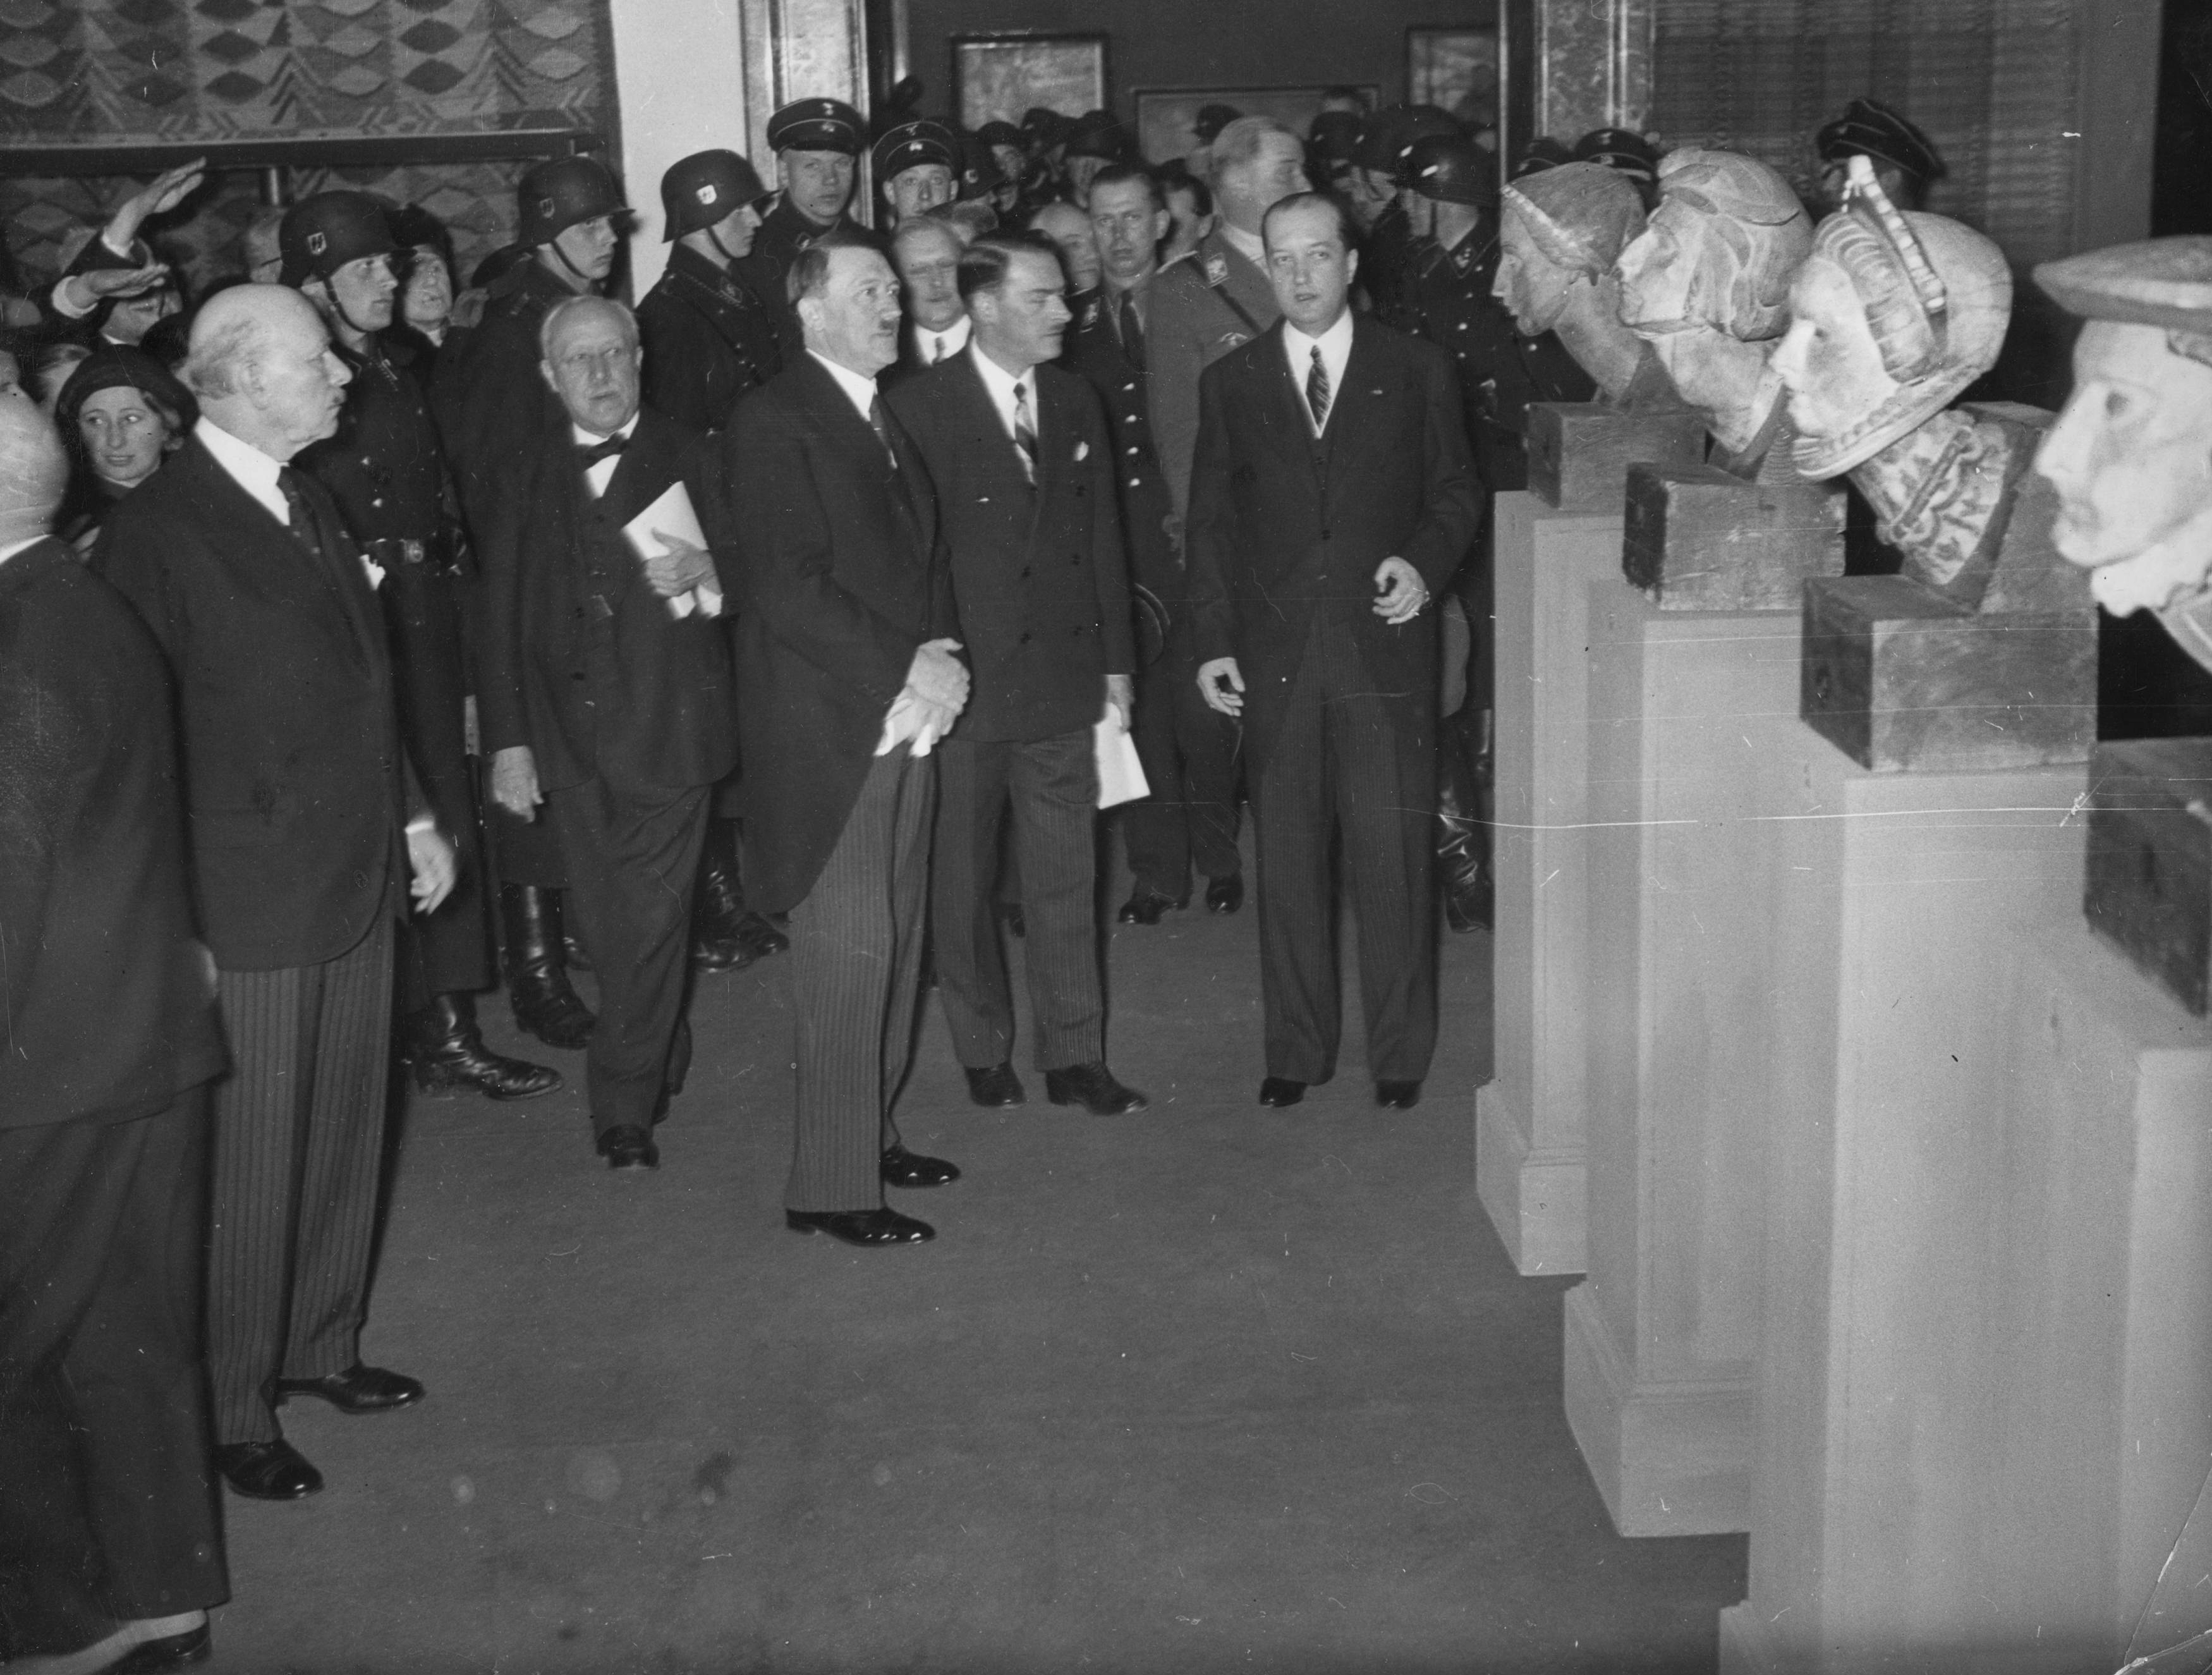 Adolf Hitler visits an exhibition of Polish art in the Akademie der Künste in Berlin